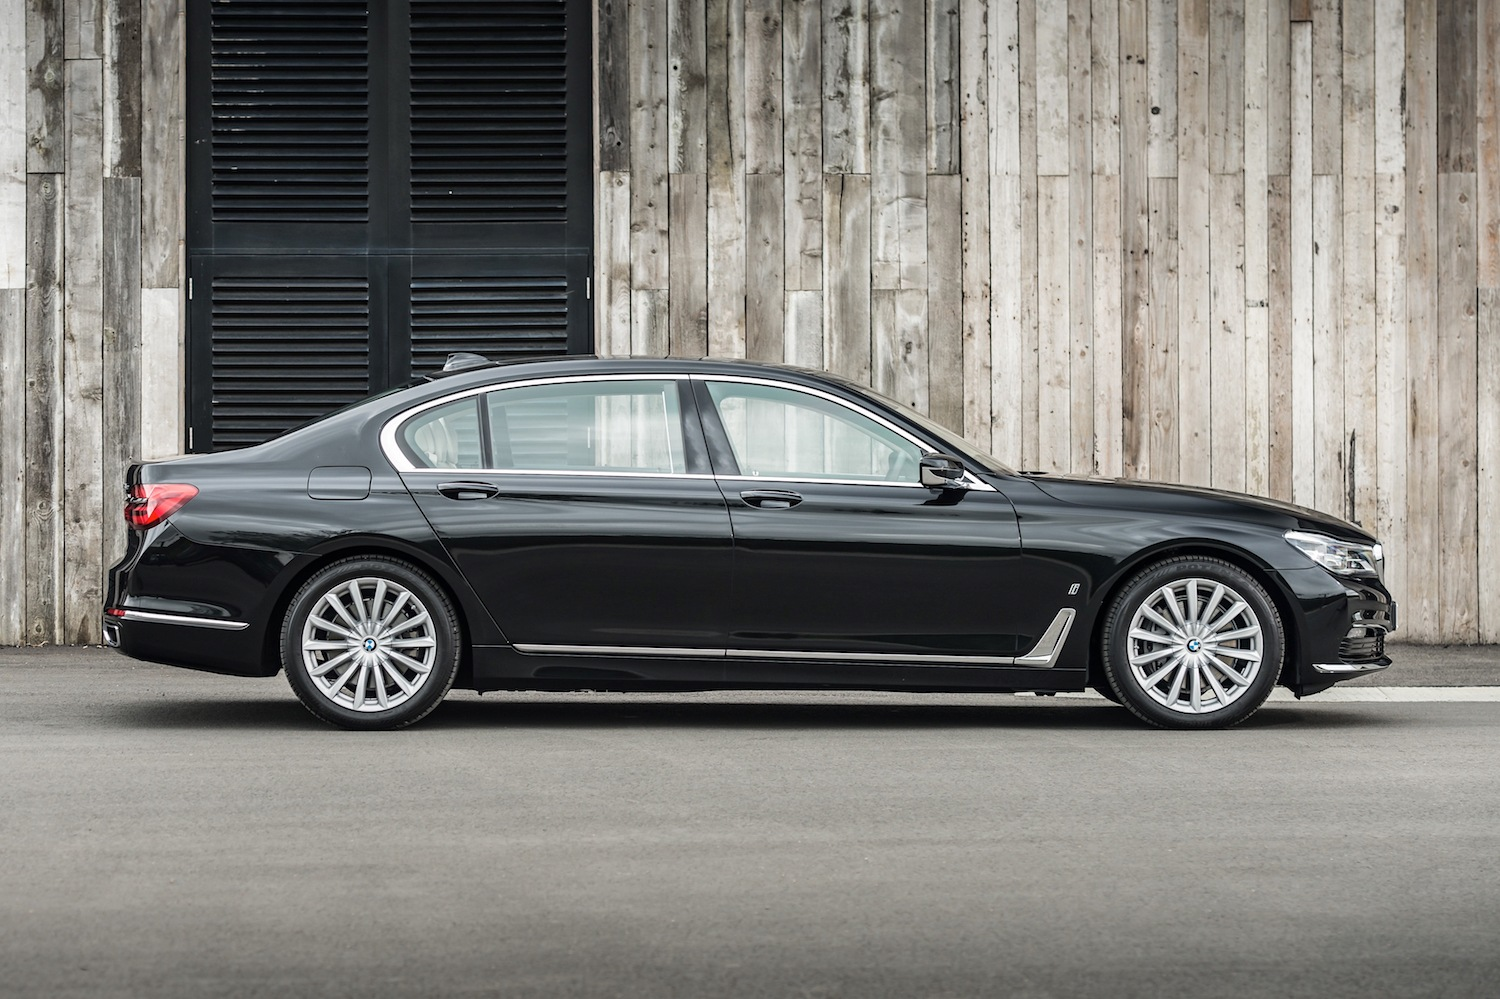 Neil Lyndon reviews the BMW 740 Ld M Sport for Drive 1